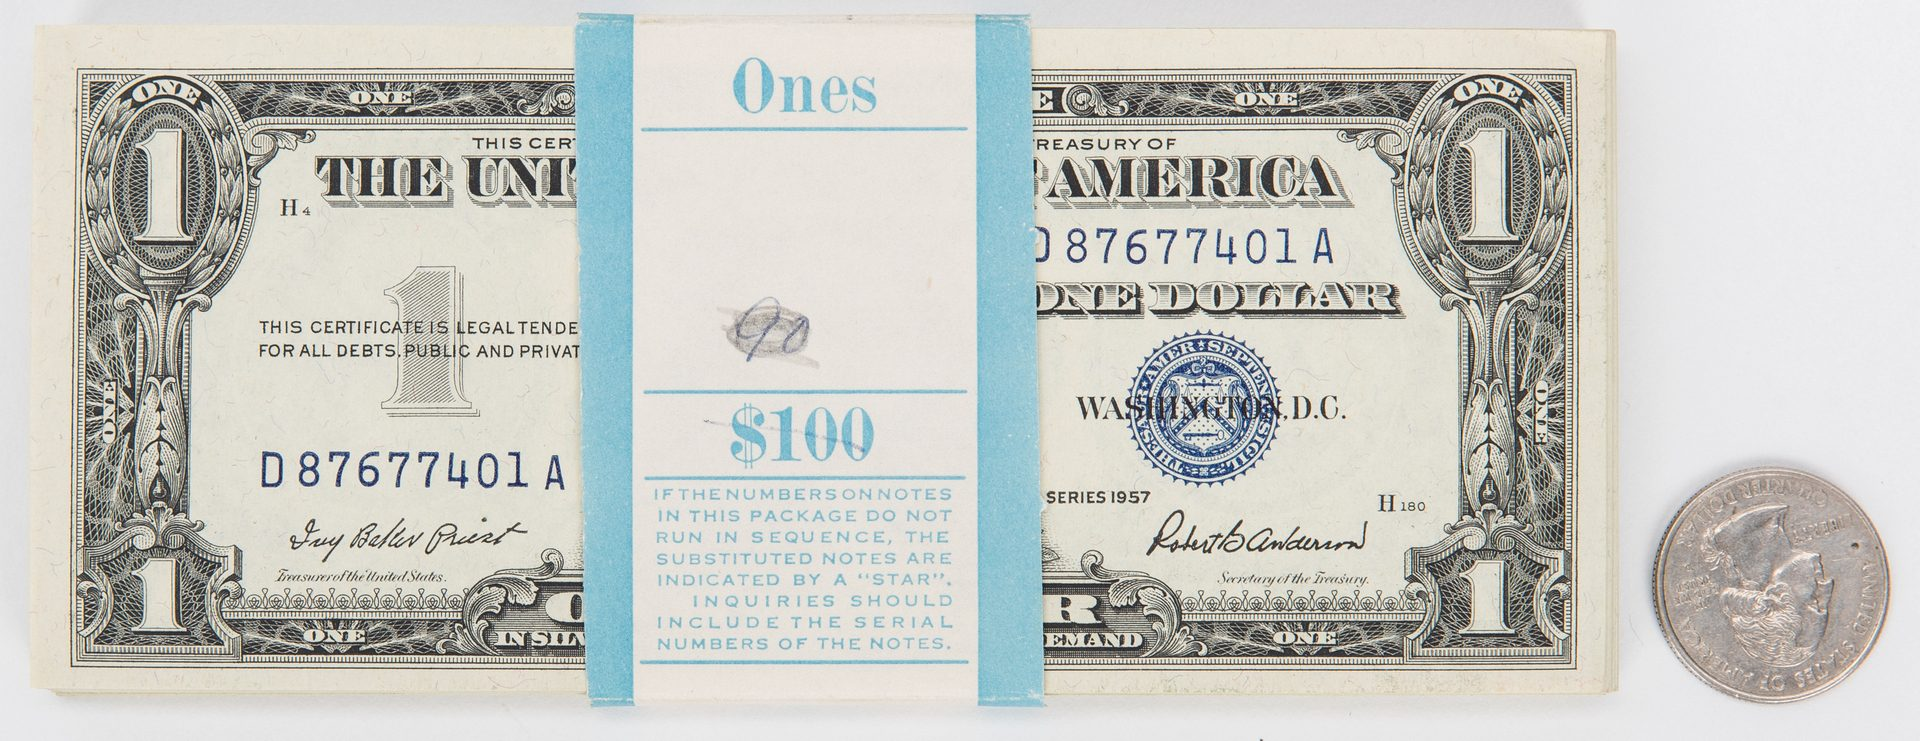 Lot 417: Pack of 100 1957 Silver Certificates